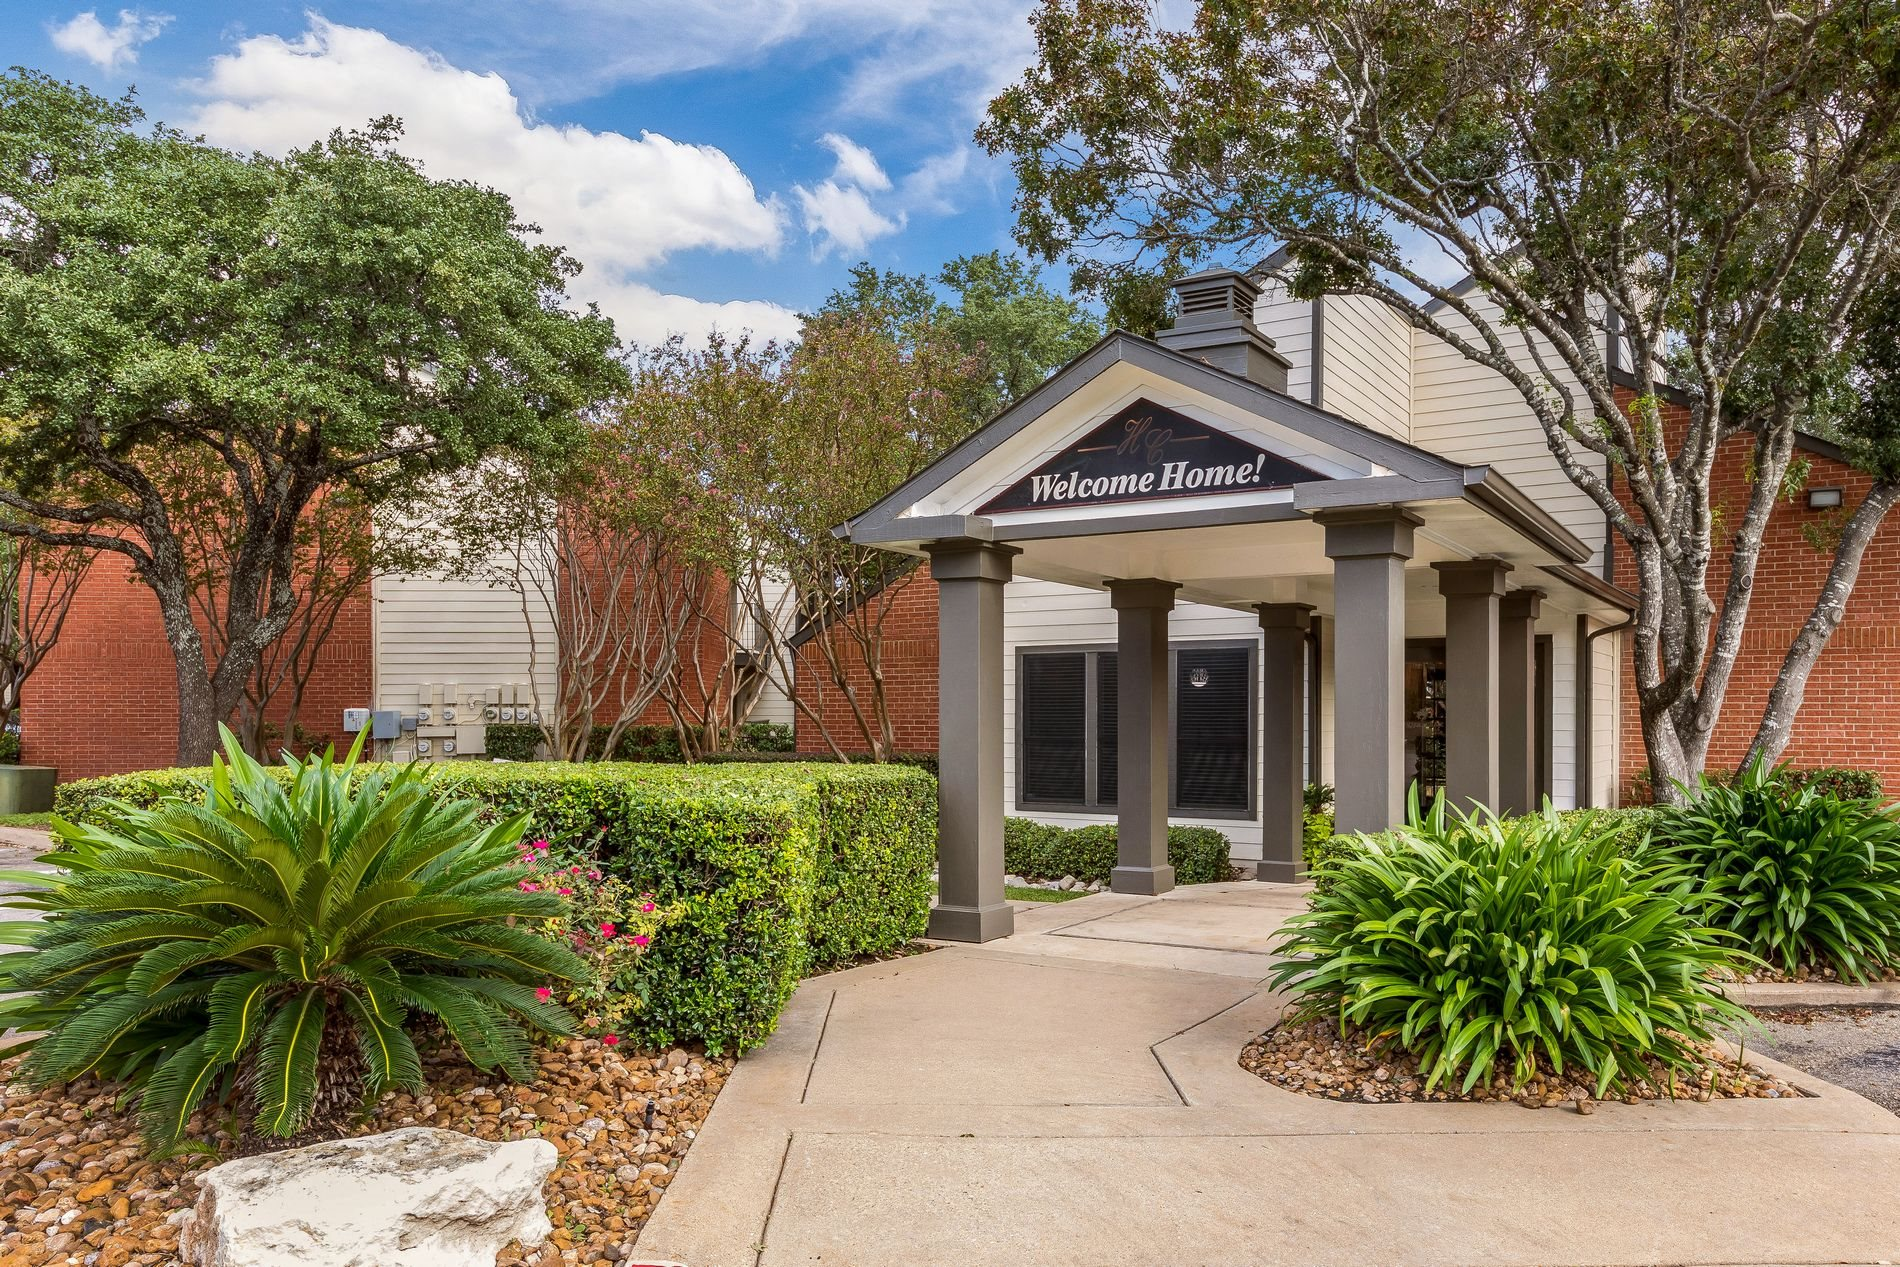 Leasing Office Exterior at Hunters Chase Apartment Homes in Austin,Texas, TX